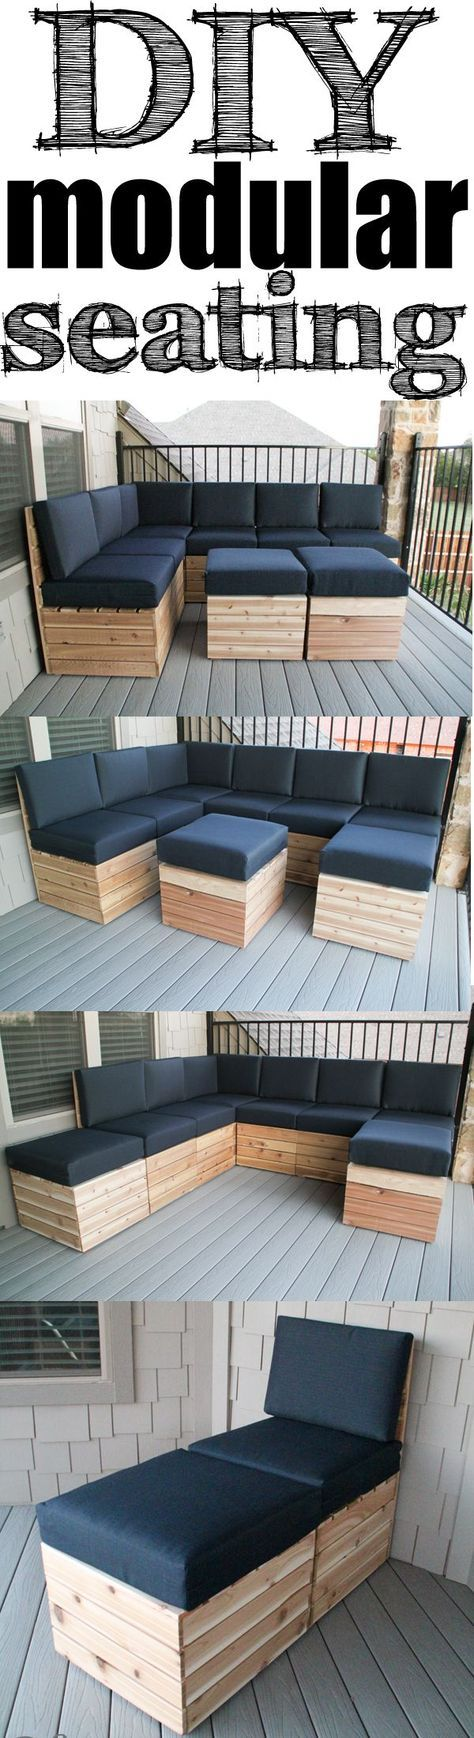 best our beach home images on pinterest furniture good ideas